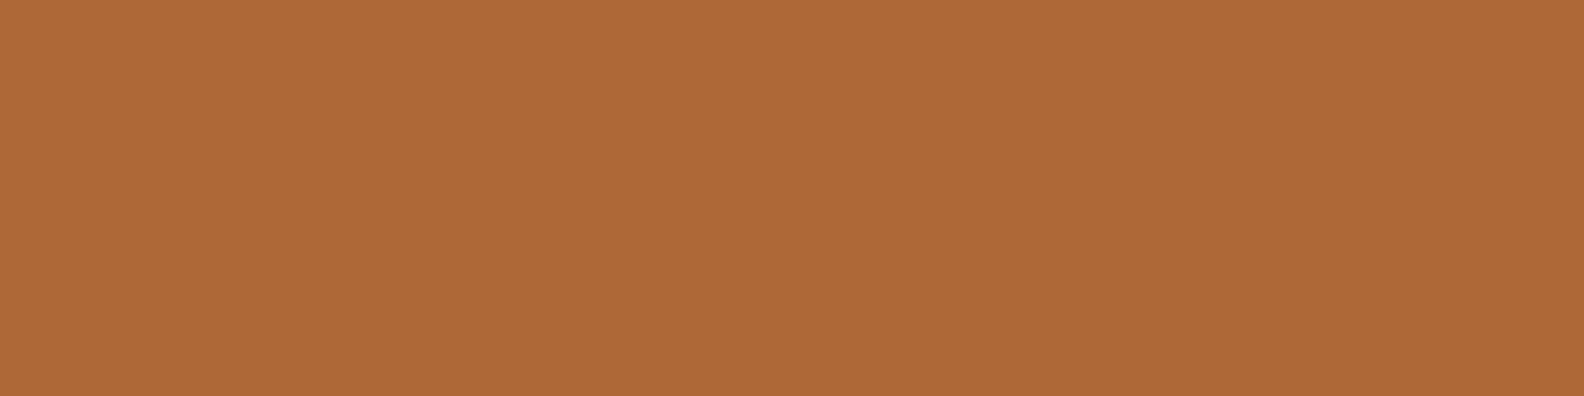 1584x396 Windsor Tan Solid Color Background